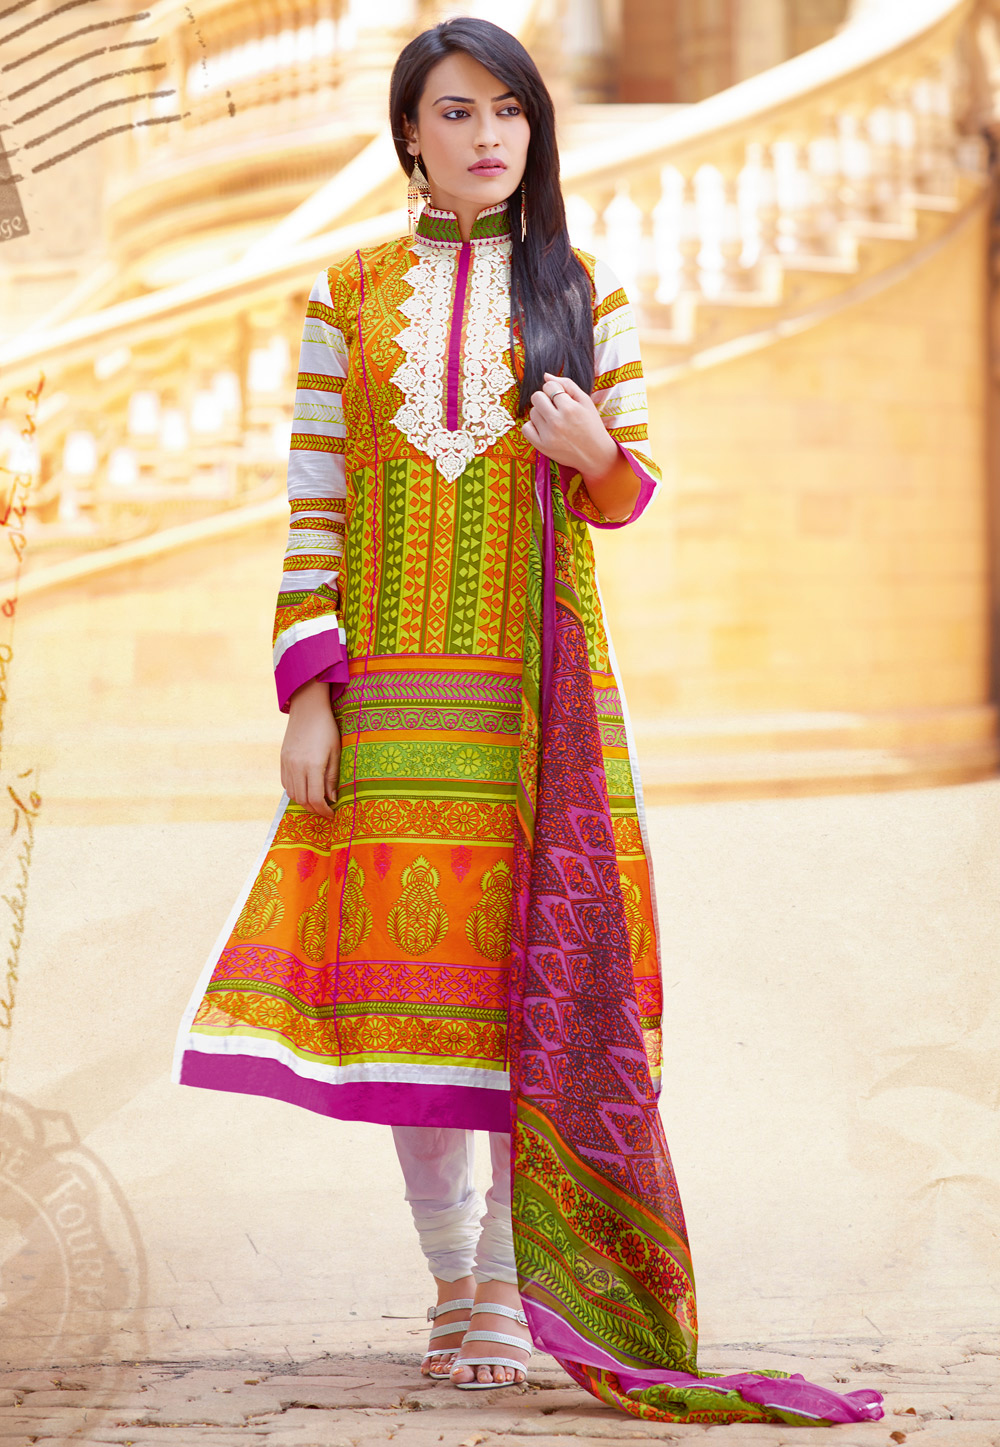 All About Lawn Salwar Suits Inspired From Pakistan